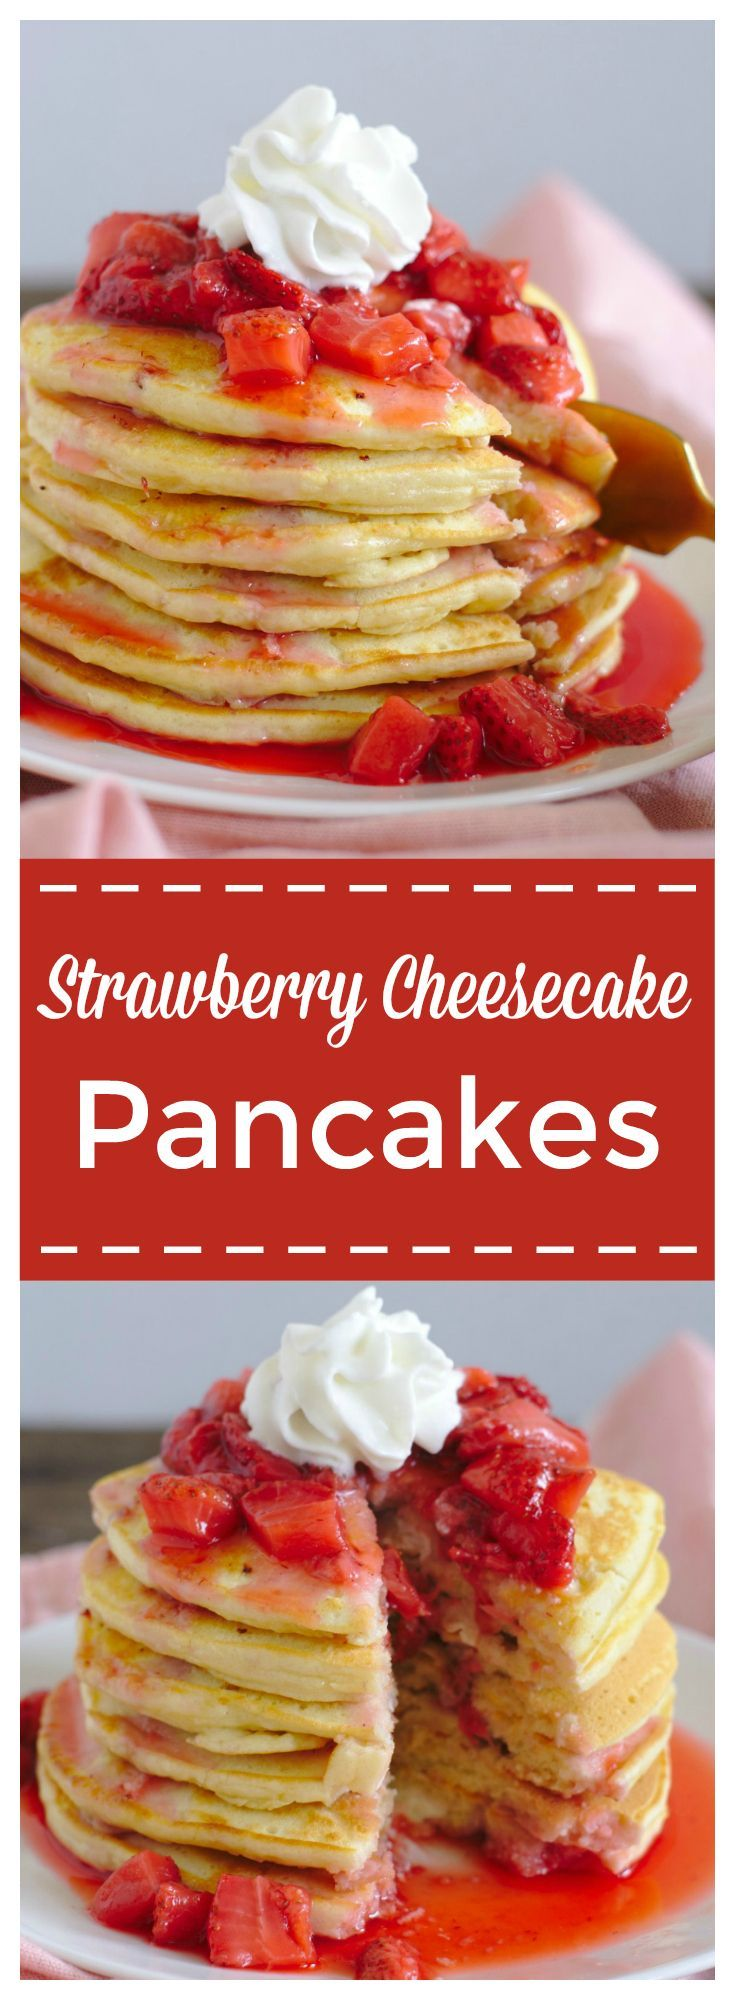 Strawberry Cheesecake Pancakes – A delicious breakfast recipe combining strawberry cheesecake and pancakes! These pancakes are jam packed with cream cheese and fresh strawberry and topped with fresh strawberry syrup! Strawberry cheesecake pancakes are so easy to make and tasty! #ad  #FlavorYourSpring @coffee_mate #pancakes #breakfast #cheesecake #strawberry